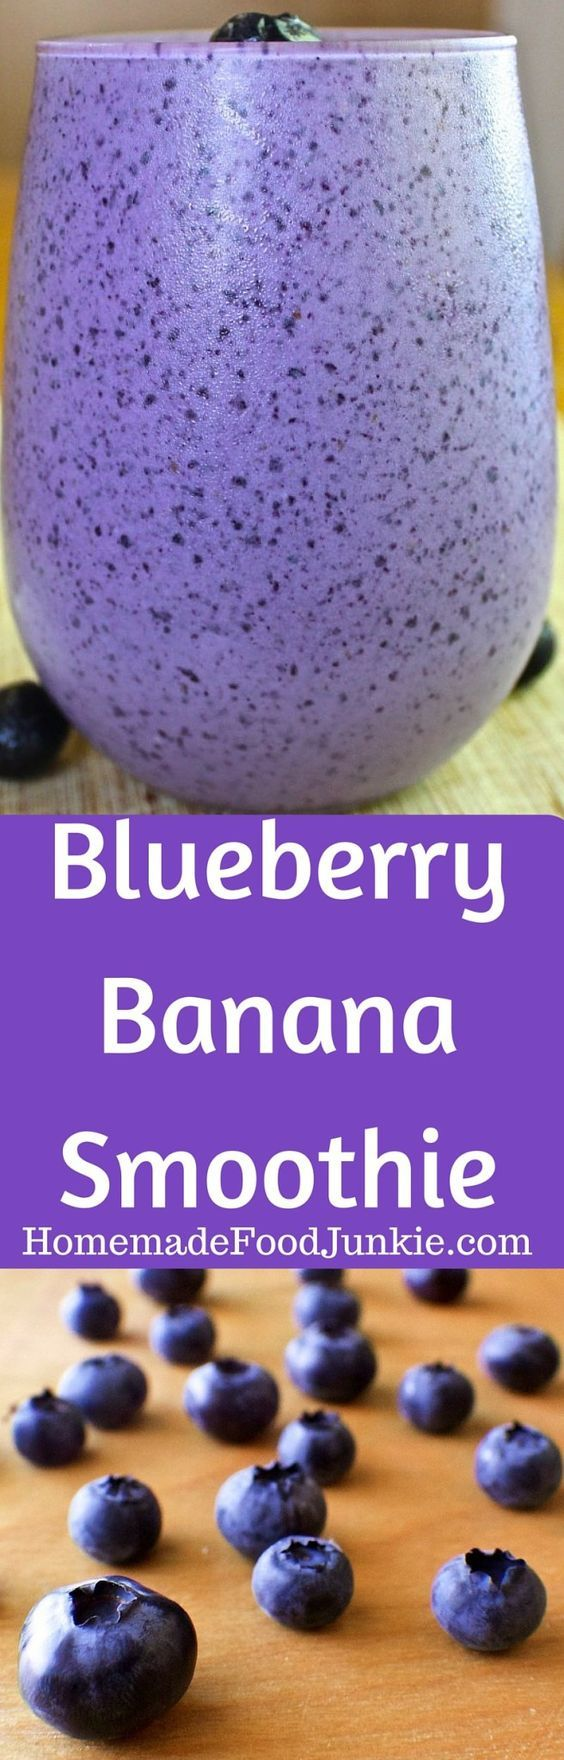 Blueberry Banana Smoothie is packed with antioxidants and protein! This…